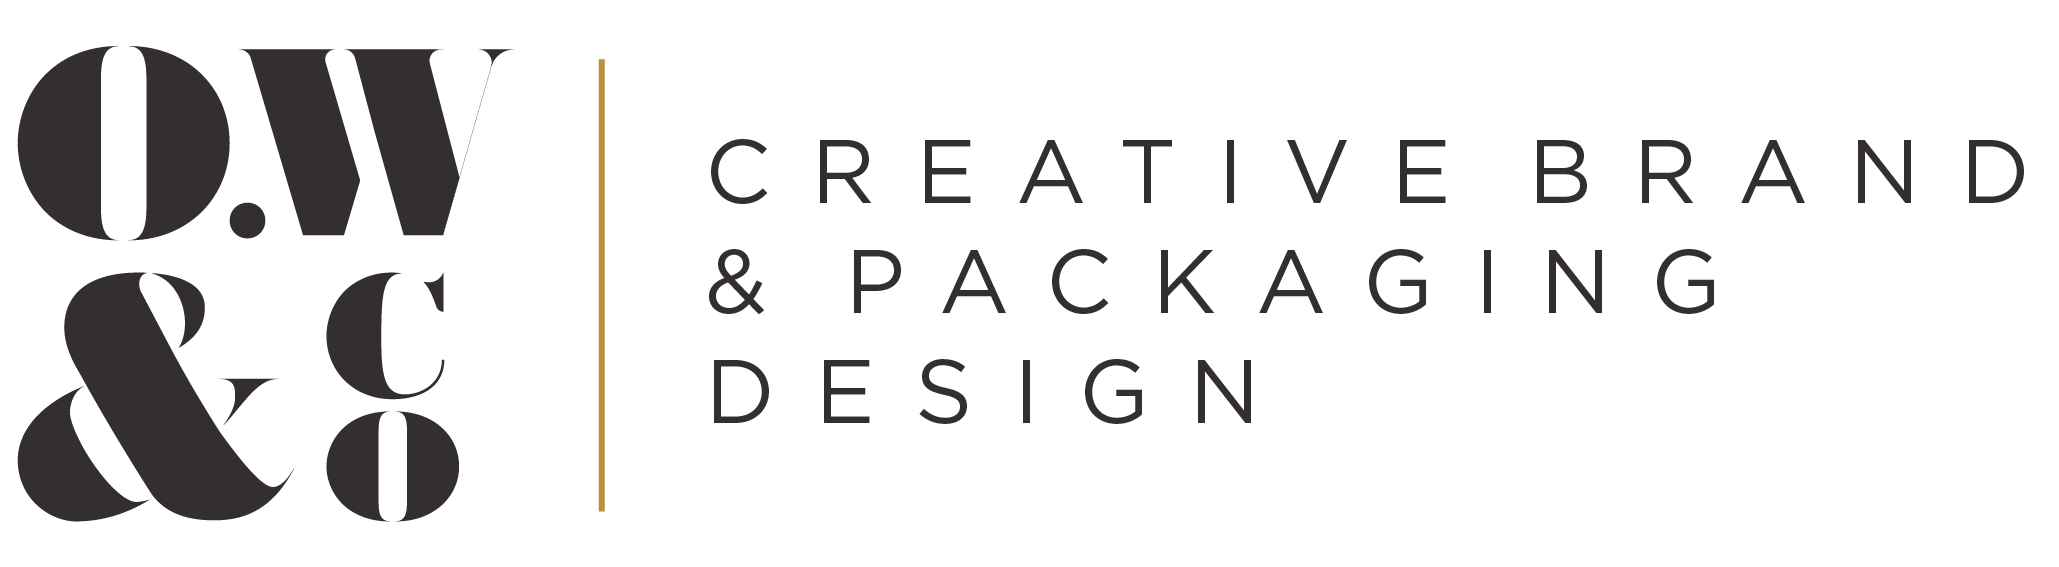 O.W&Co. Brand & Packaging Design